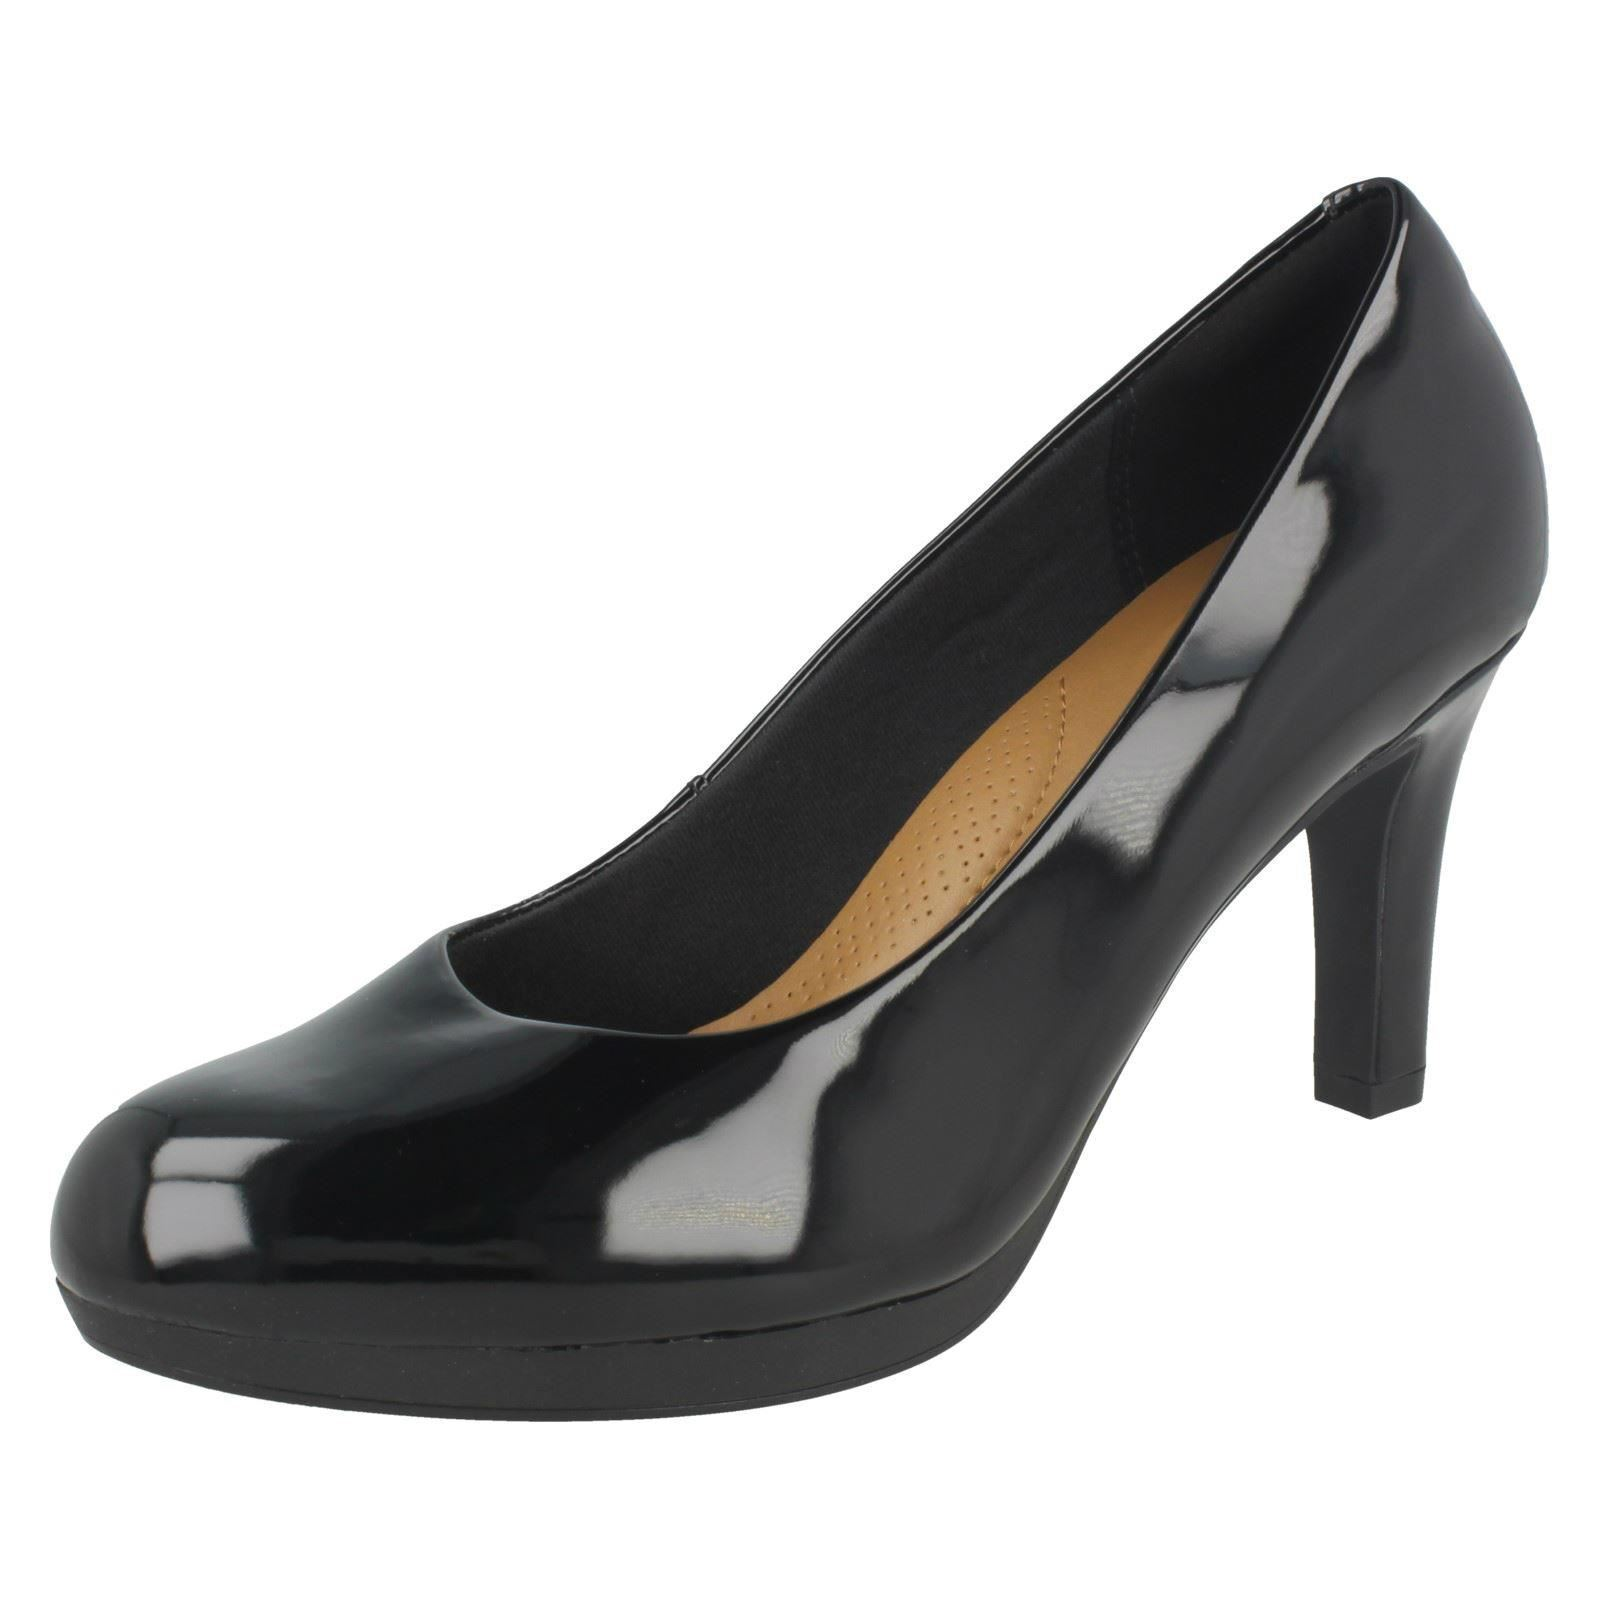 ADRIEL VIOLA LADIES CLARKS LEATHER HEELED WIDE SLIP ON PUMPS HEELED LEATHER COURT Schuhe SIZE f206e6